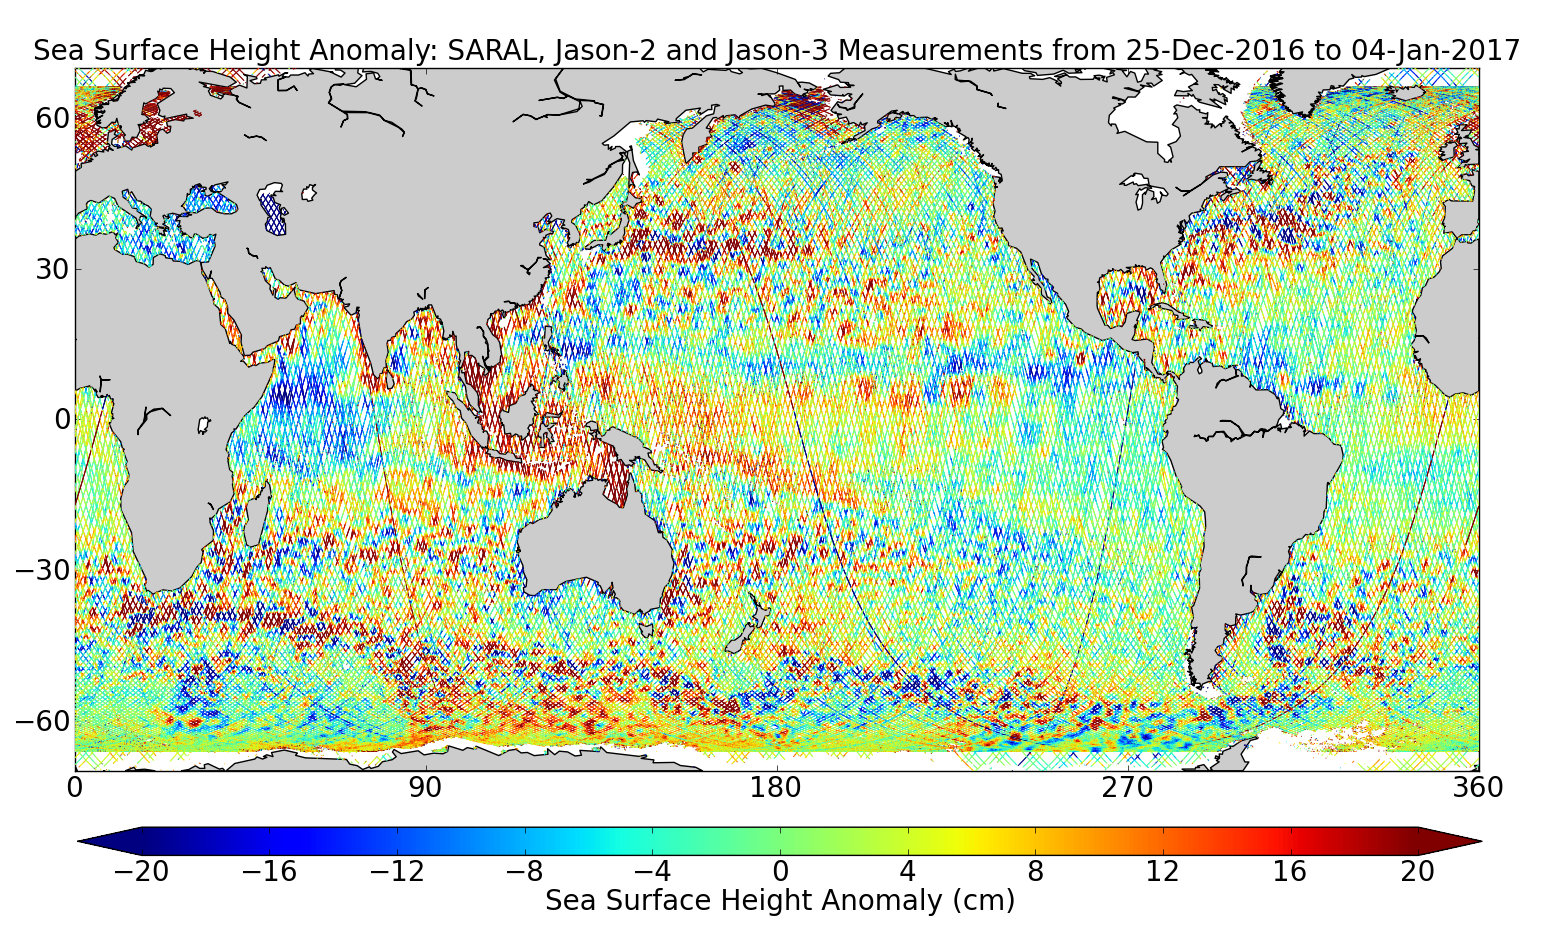 Sea Surface Height Anomaly: SARAL, Jason-2 and Jason-3 Measurements from 25-Dec-2016 to 04-Jan-2017